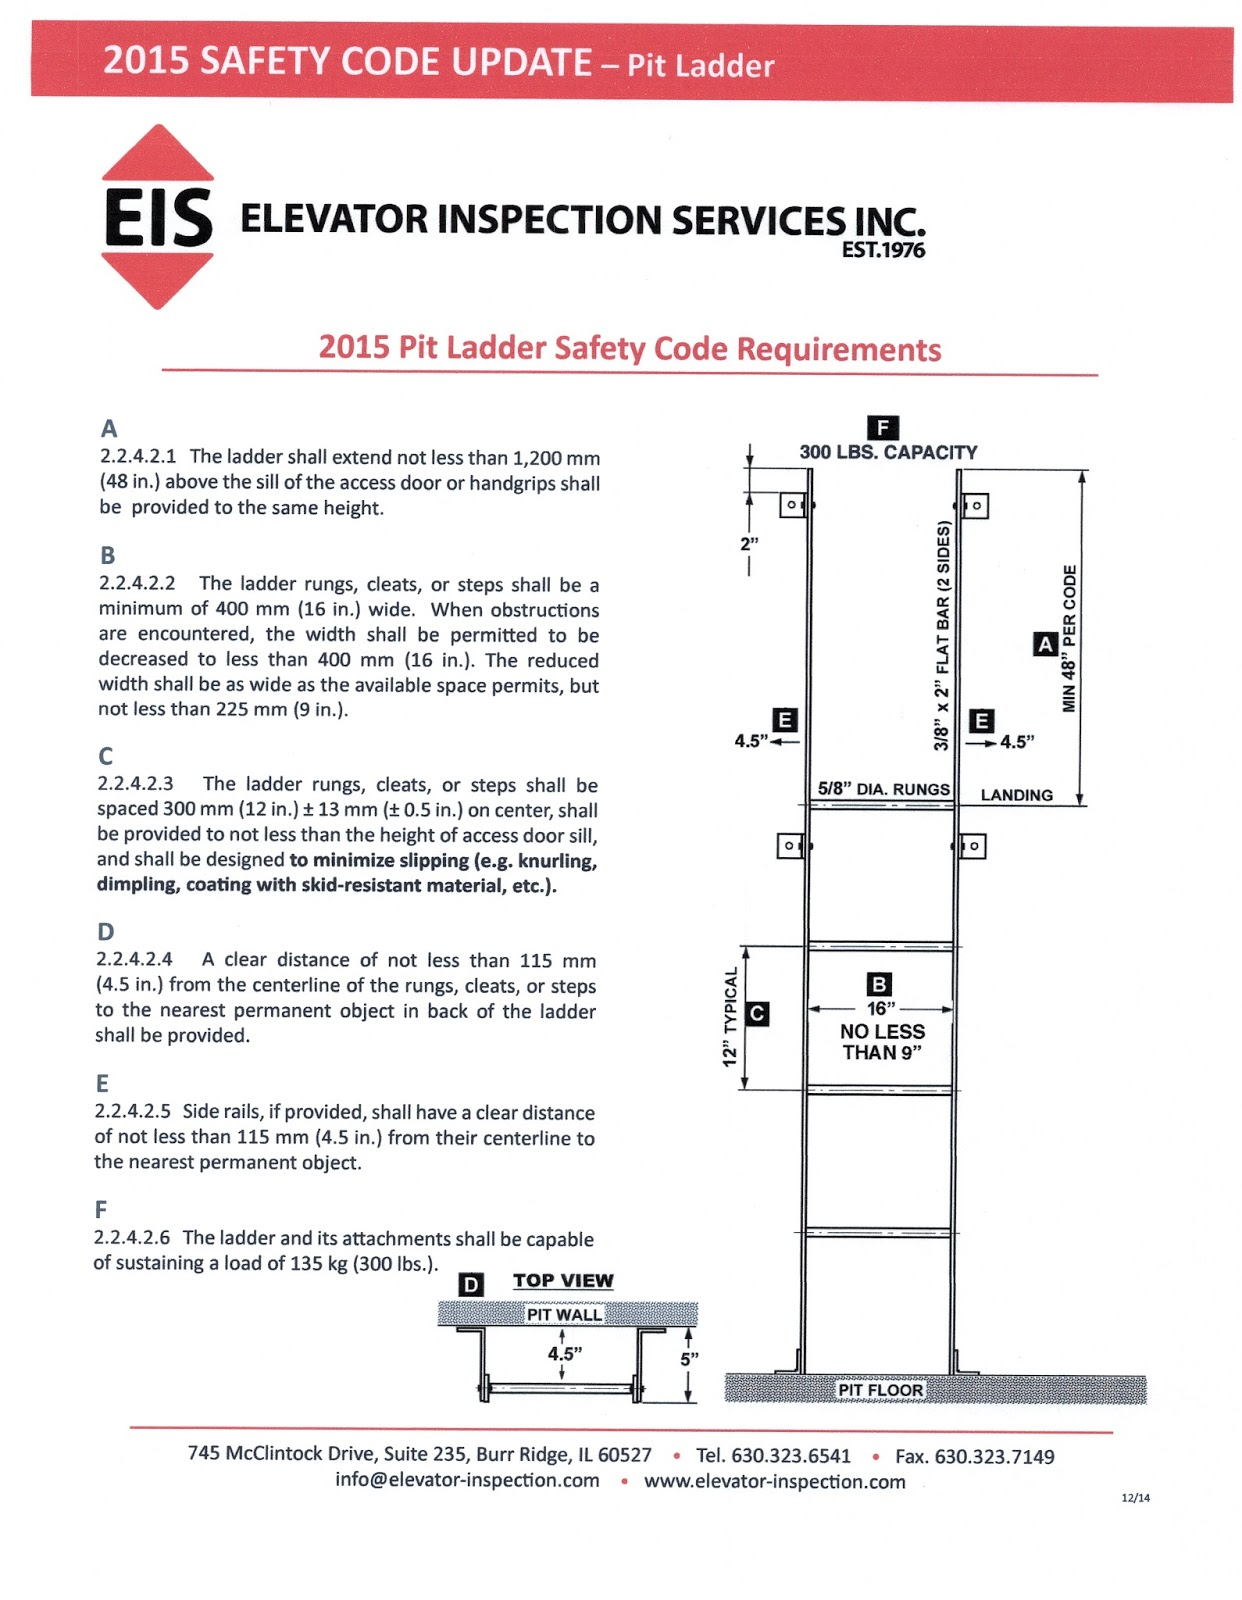 chicago elevator maintenance colley elevator state of illinois elevator pits are spaces that be filled many other items hydraulic lines wiring race ways limit switches etc that will not allow a traditional